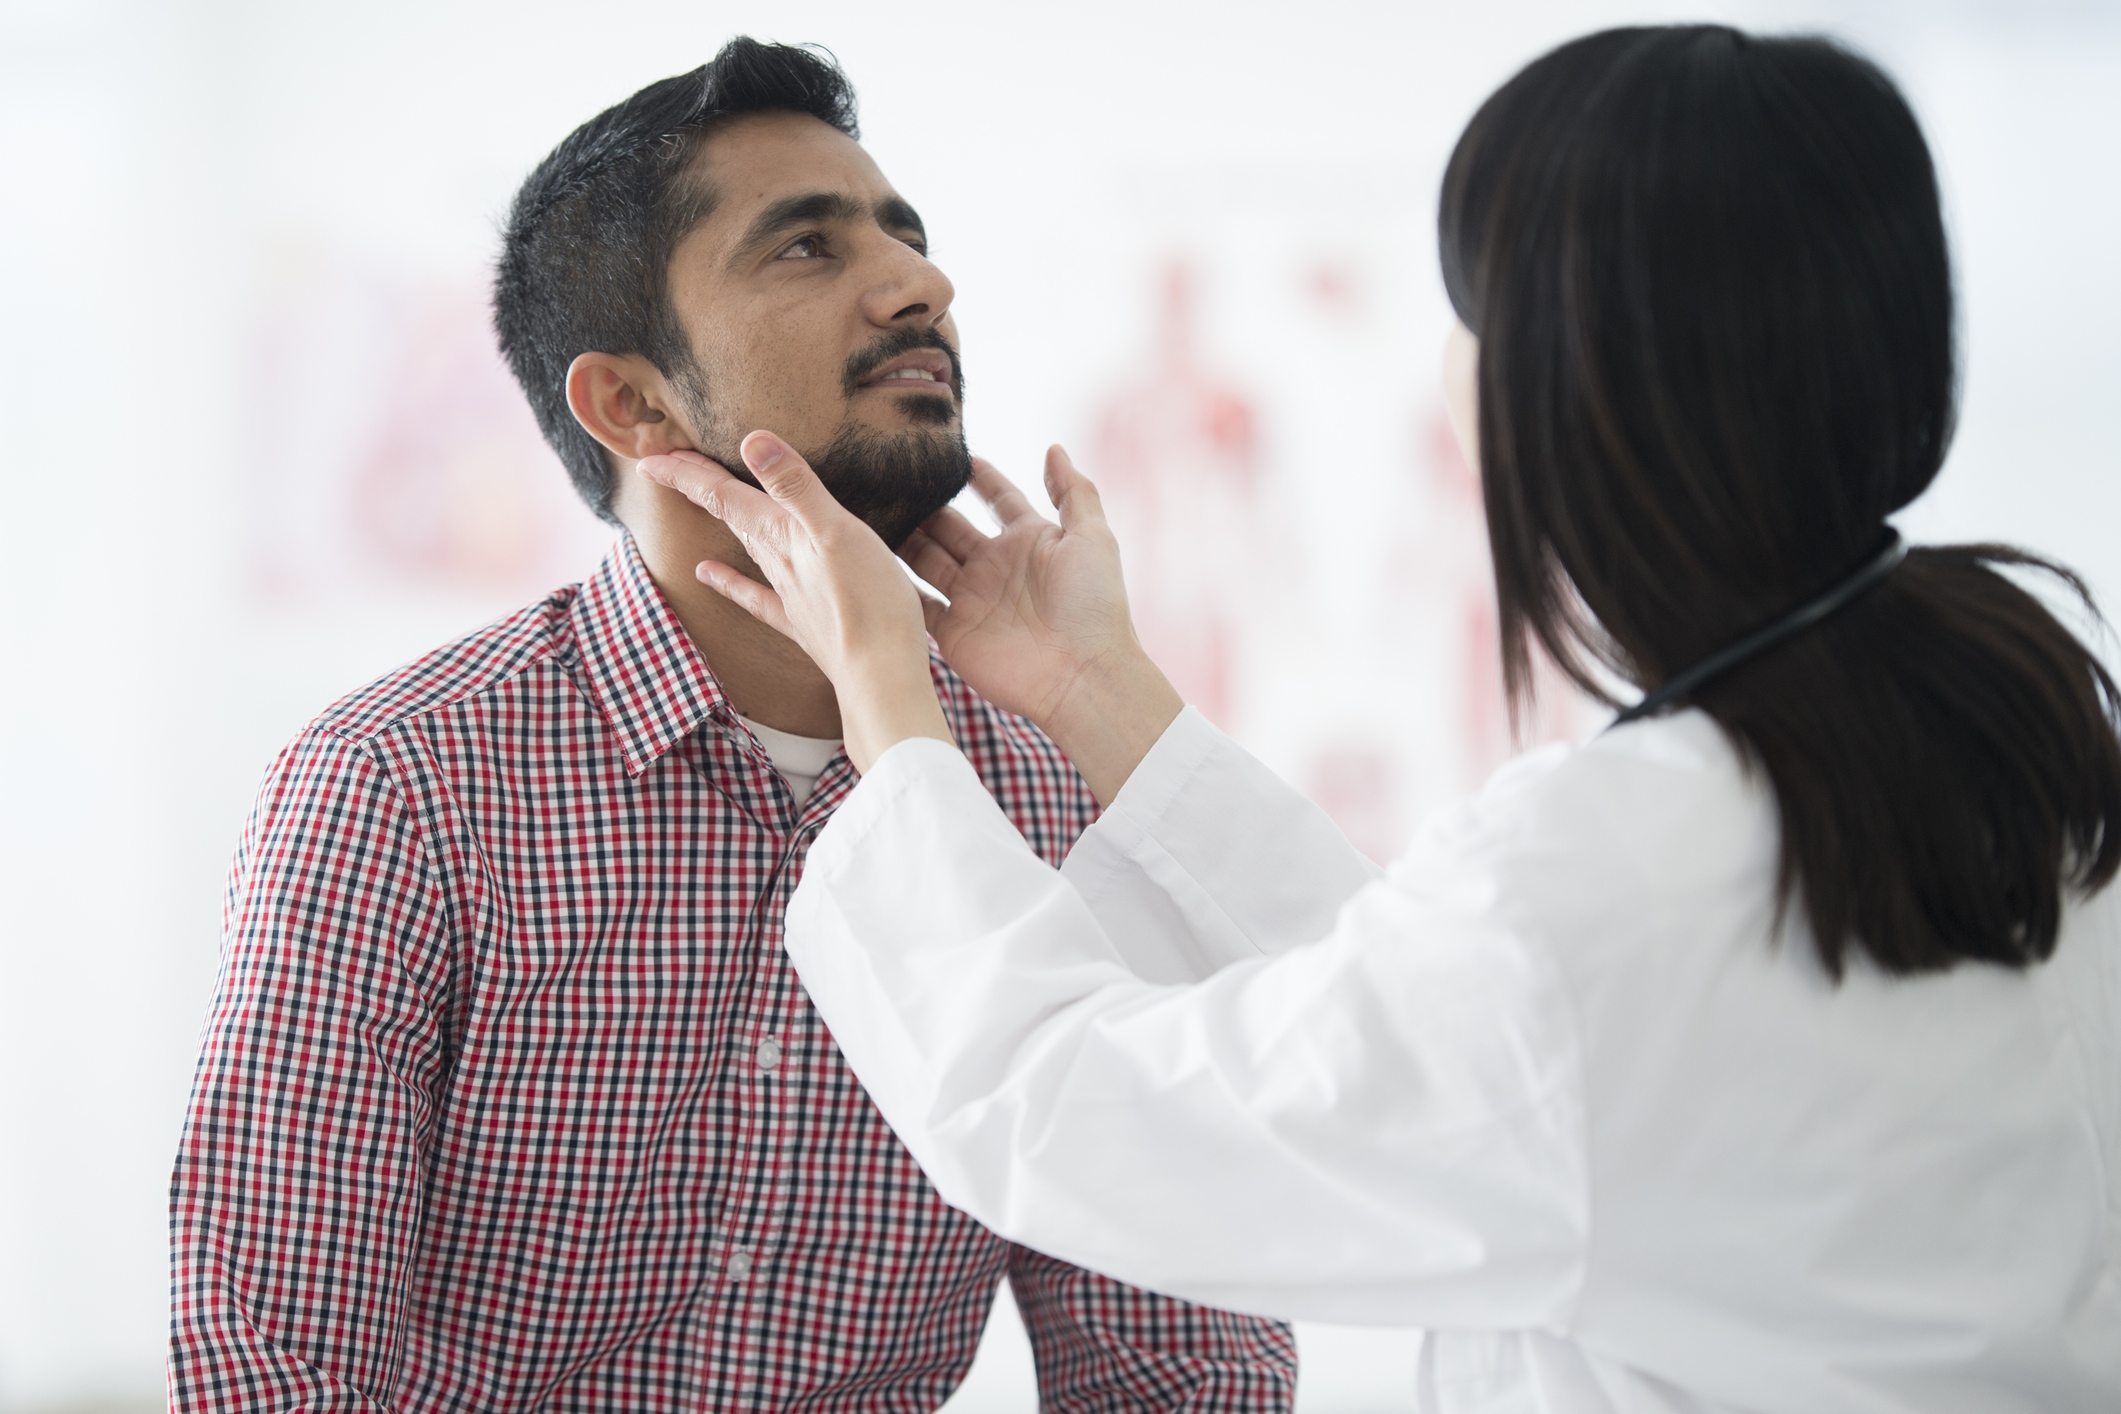 man getting his throat checked by doctor